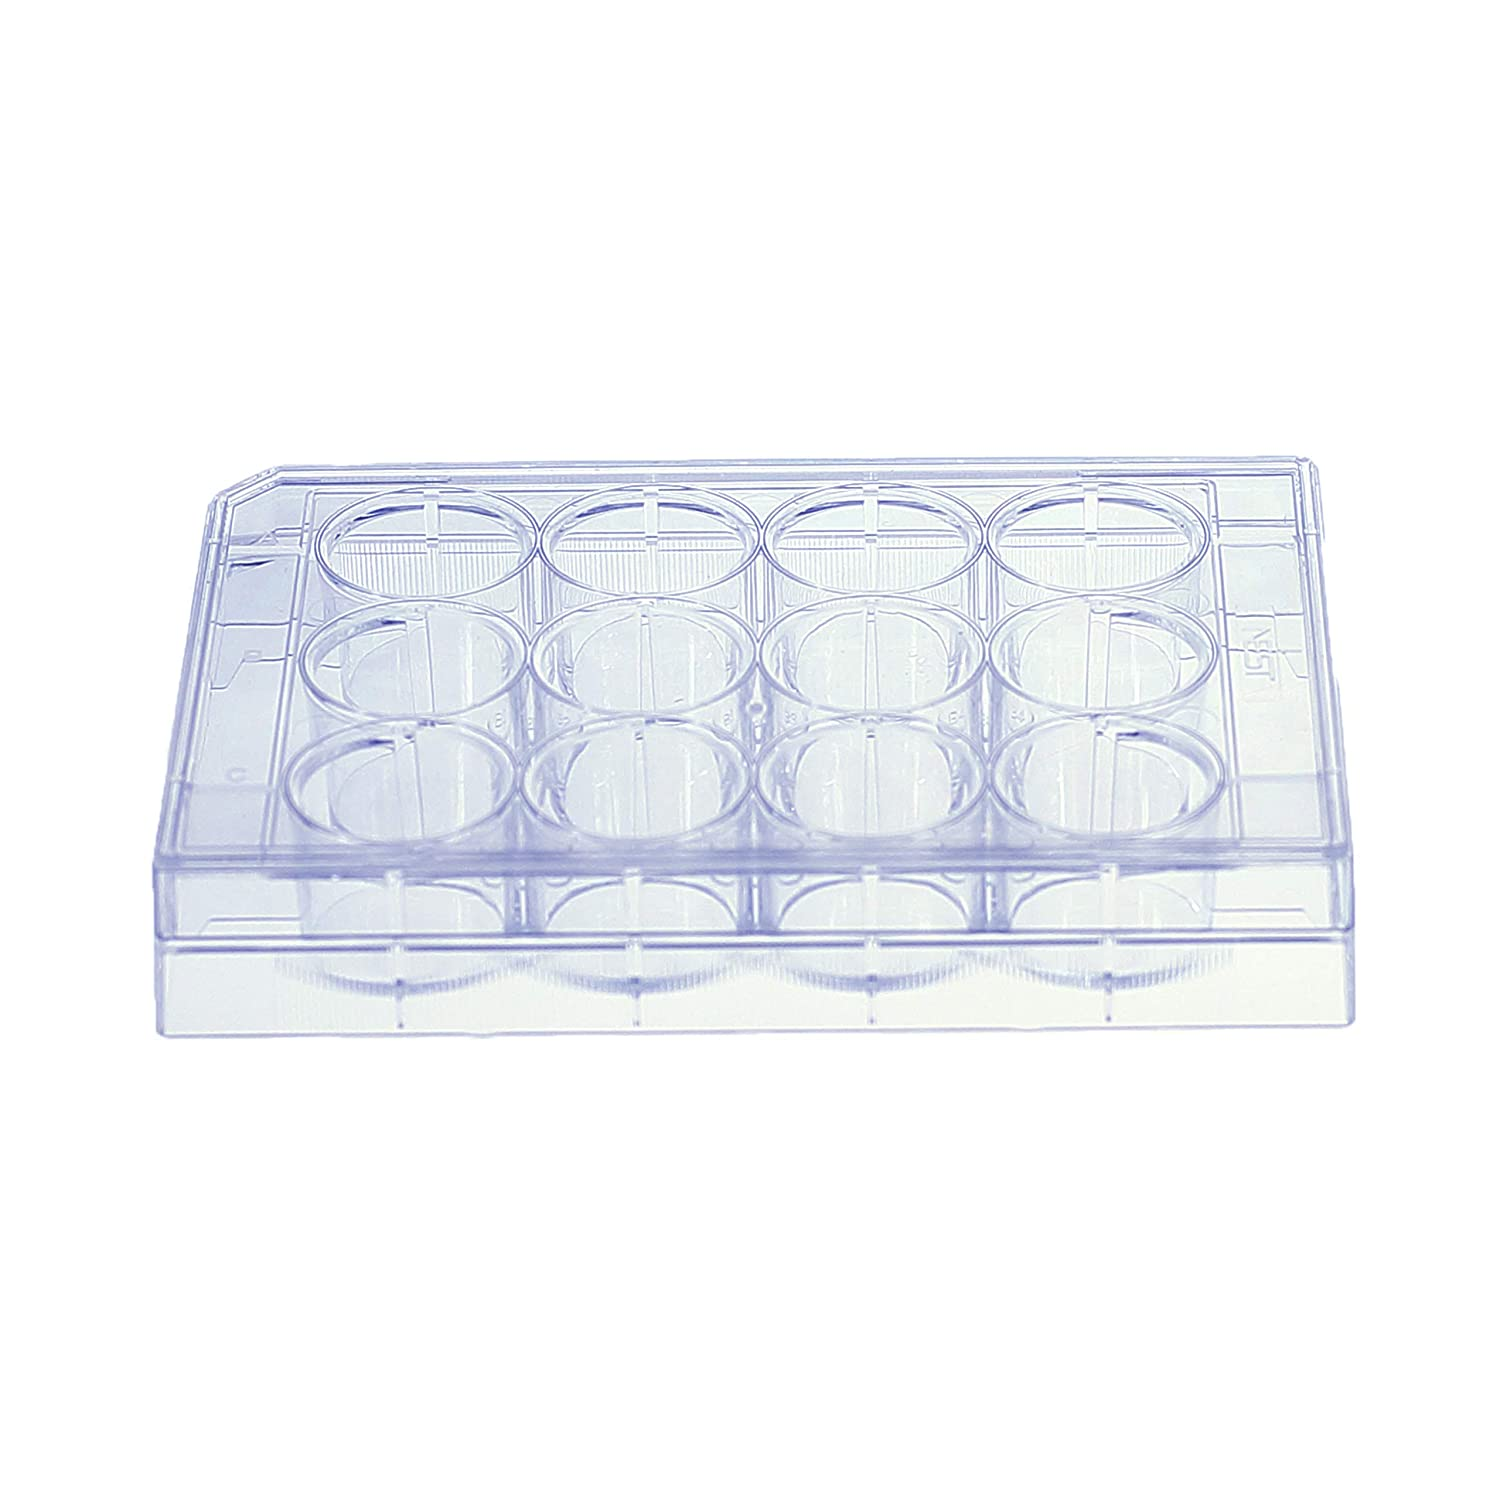 Image of Sapphire 12 Well Tissue Culture Plate for Optimal Cell Culture Growth, Individually Wrapped with Lid, Sterile, 3.6 cm² Growth Area, 50 Treated Cell Culture Plates per case Cell Culture Dishes